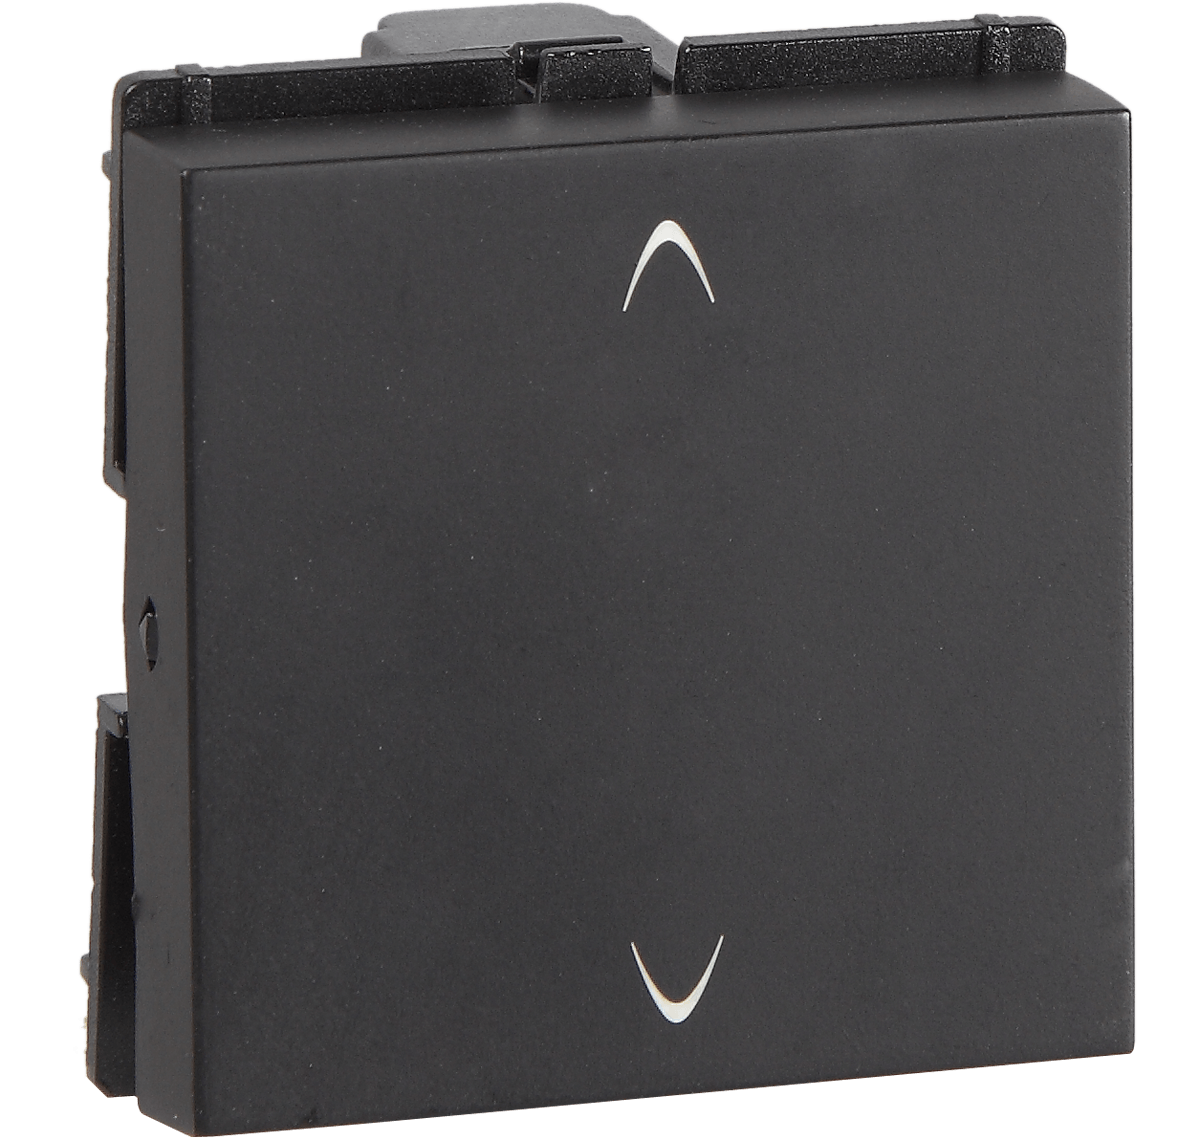 10 AX Mega Two way switch